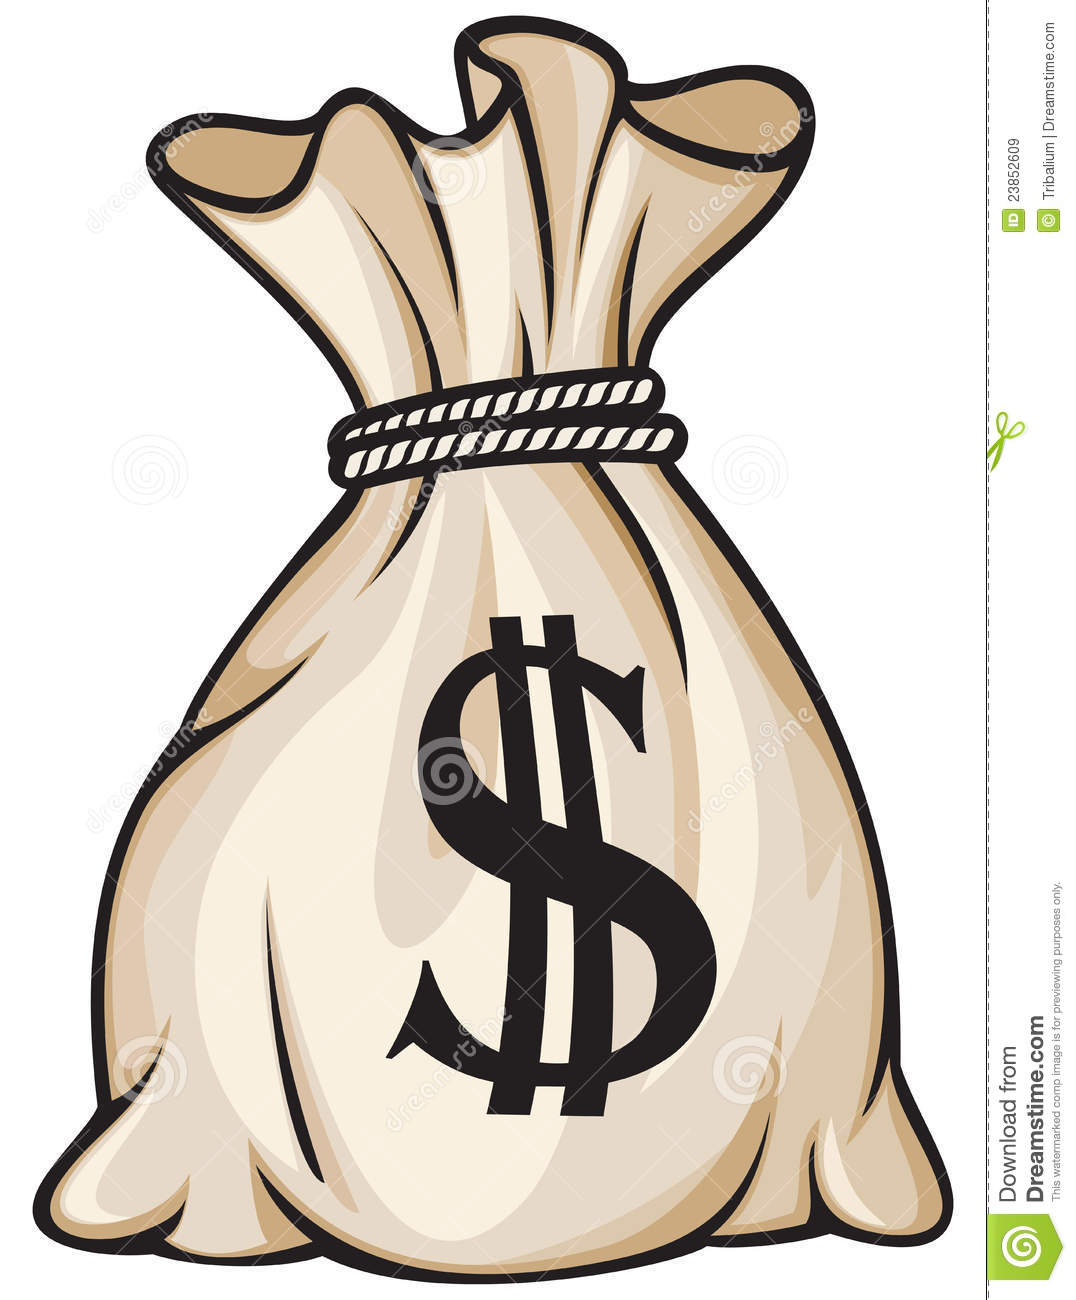 Money Bag Royalty Free Stock Images - Image: 23852609